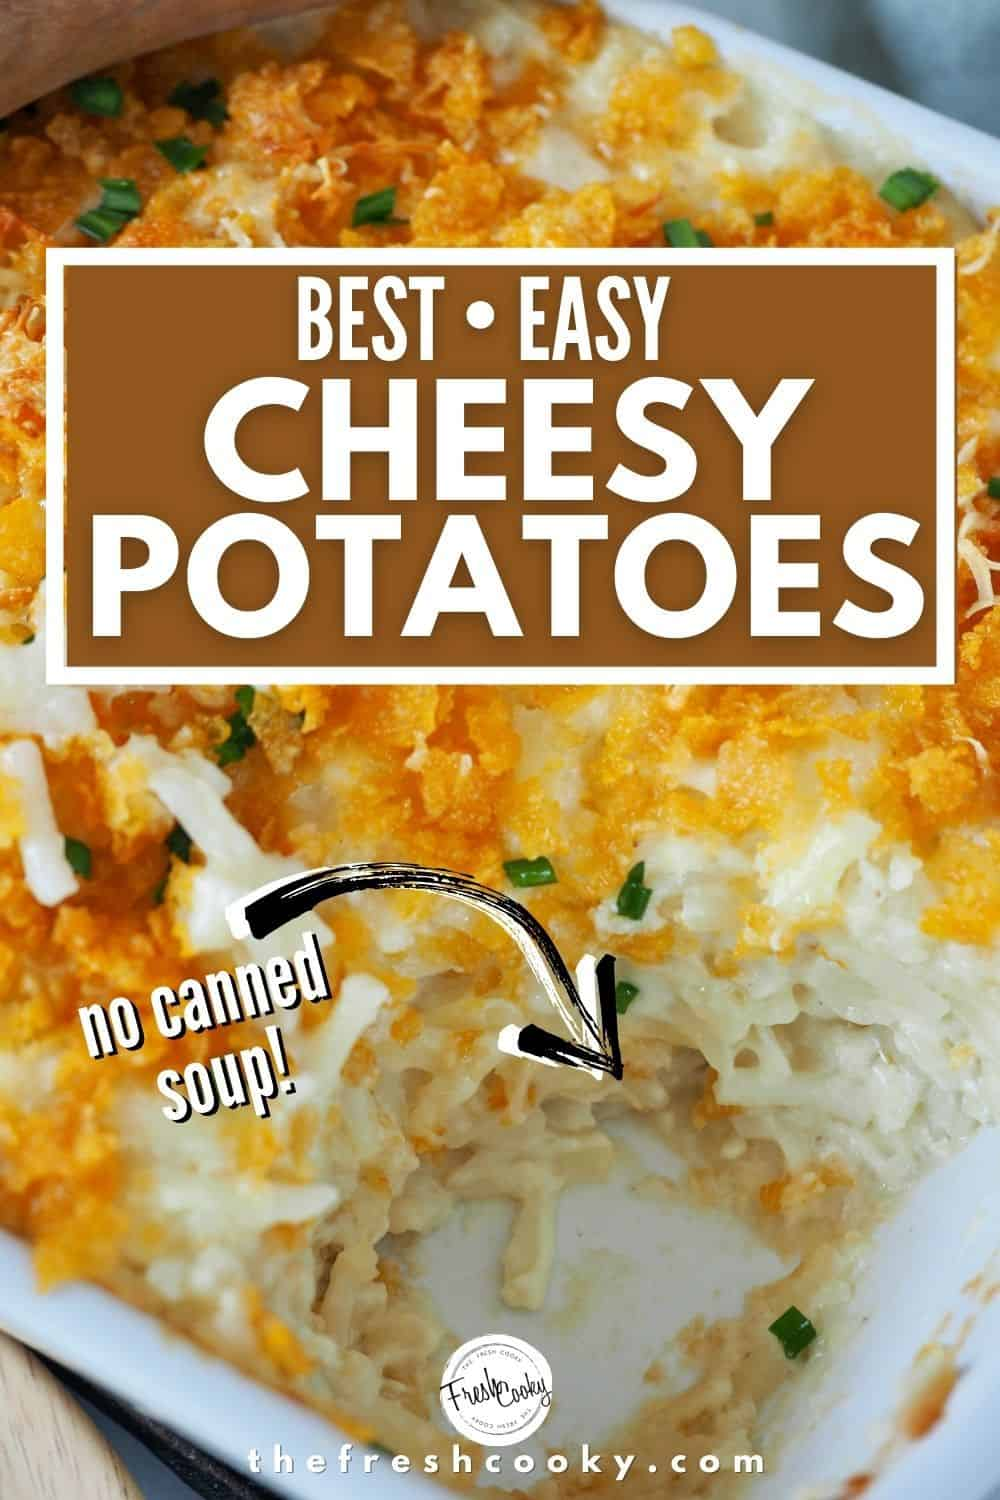 These are THOSE cheesy potatoes, the best potato casserole ever. Whether you call them Funeral Potatoes, or Party Potatoes you should make these easy, no canned soup potato side dish. Make ahead, gluten free options and freezer friendly. Perfect side dish for Christmas, Thanksgiving, Easter or potluck. #thefreshcooky #cheesyfuneralpotatoes #funeralpotatoes #thepioneerwoman via @thefreshcooky